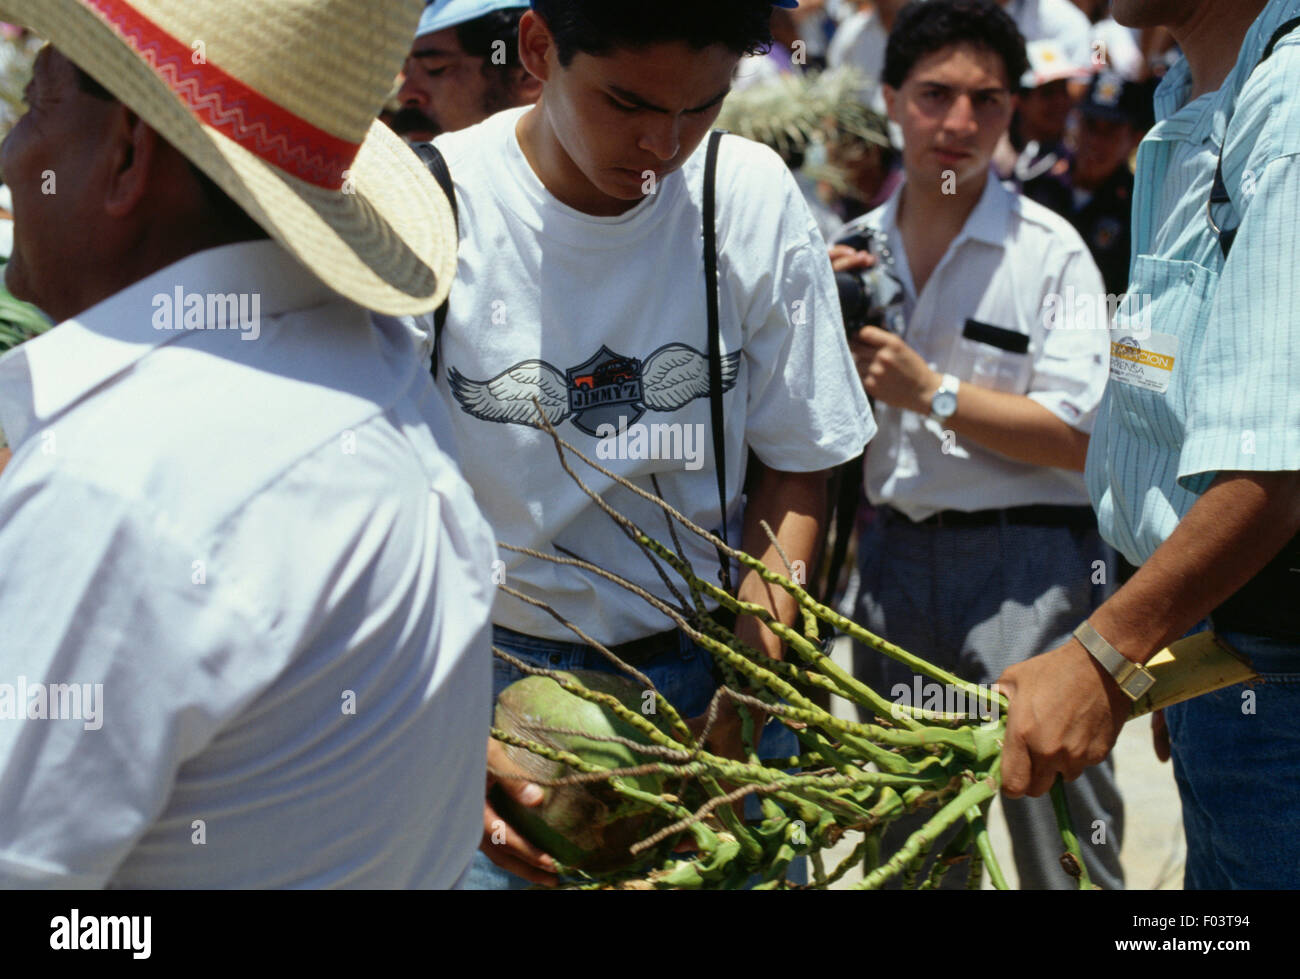 A man with the gifts he received during the celebrations at the Guelaguetza festival, Oaxaca, Mexico. Stock Photo